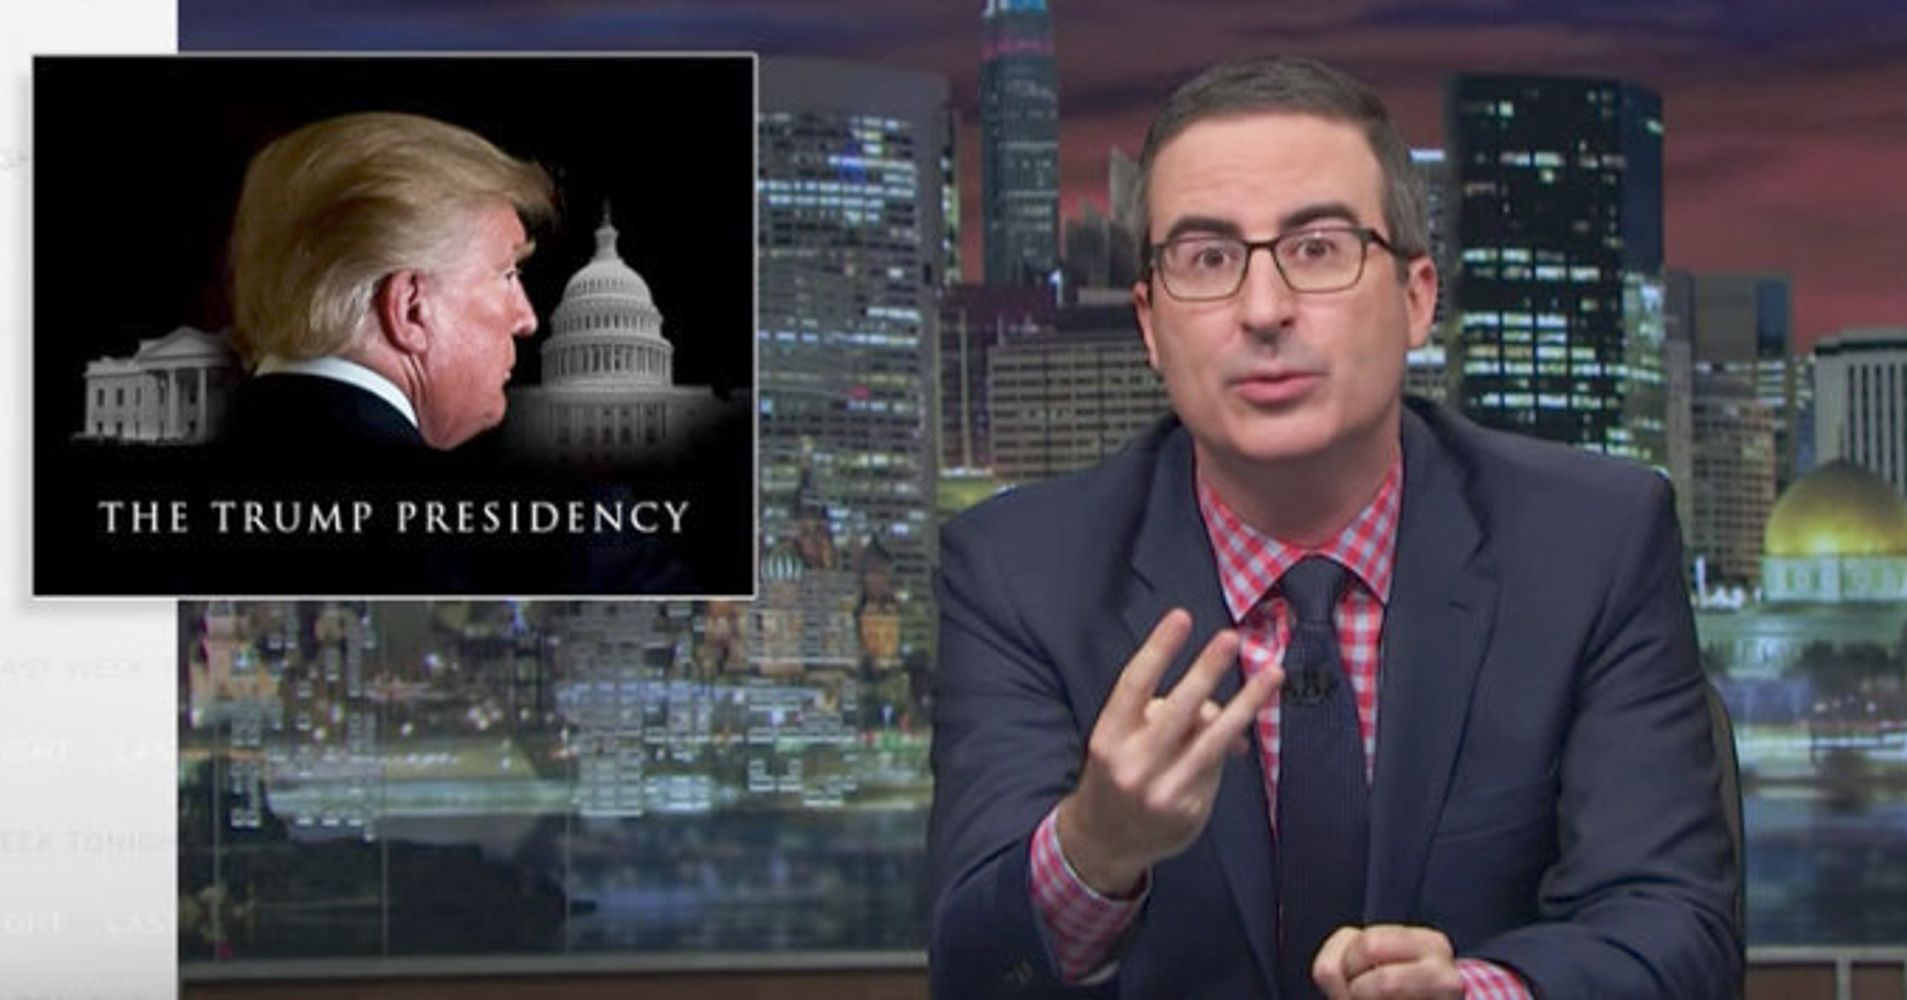 John Oliver Lays Out The Most Disturbing Ways In Which Trump Impacts America